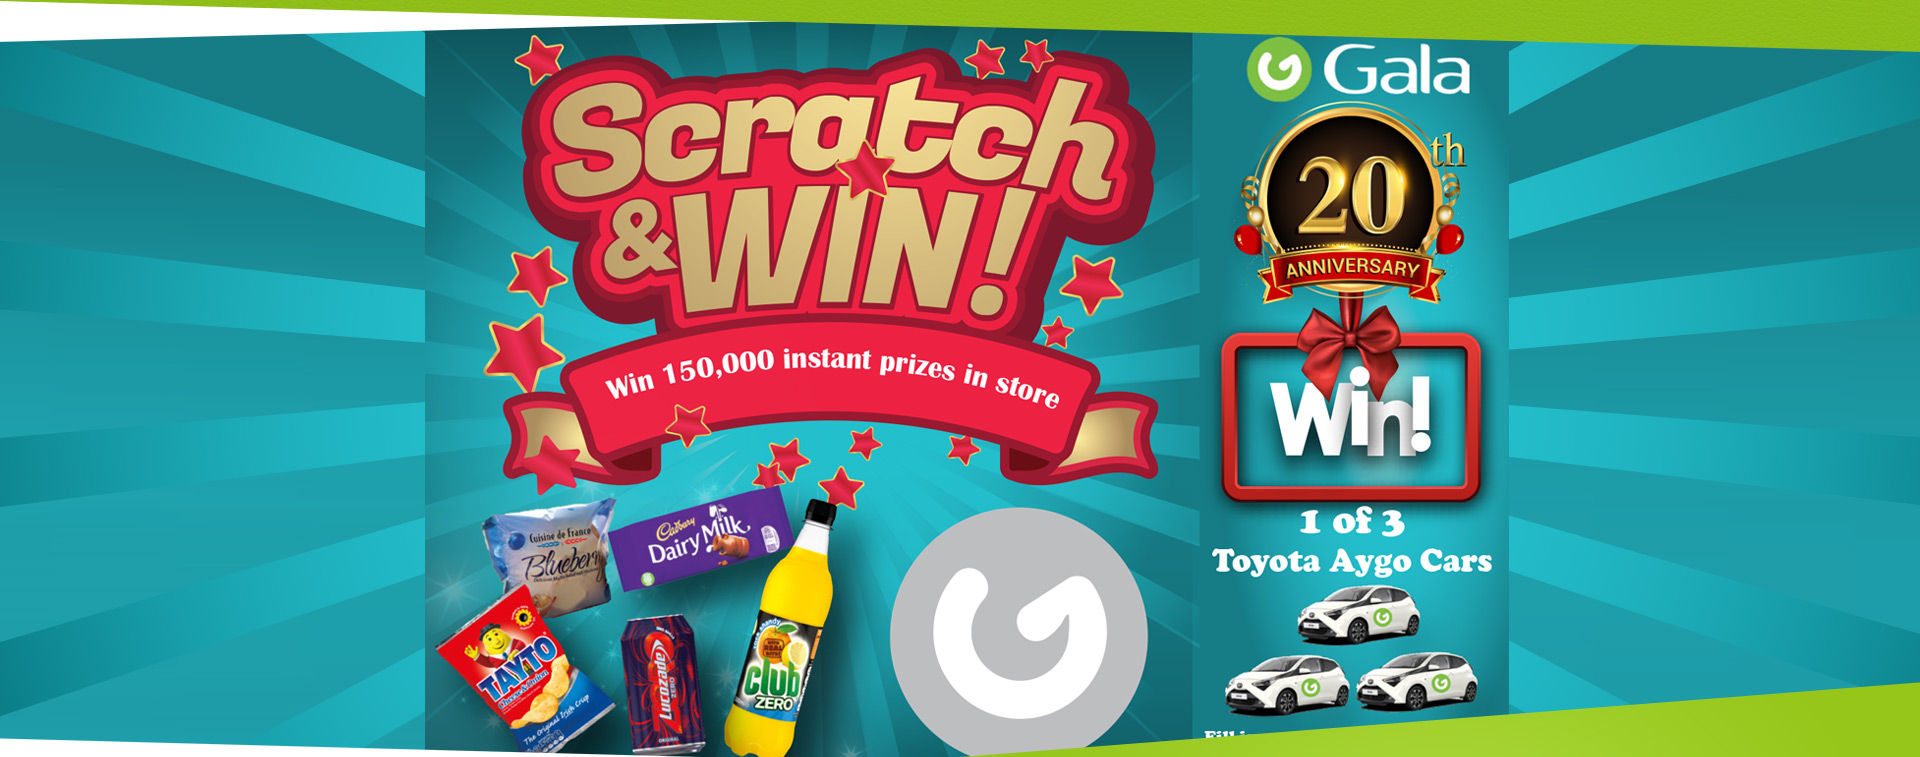 Win 1 of 3 Toyota Aygo Cars